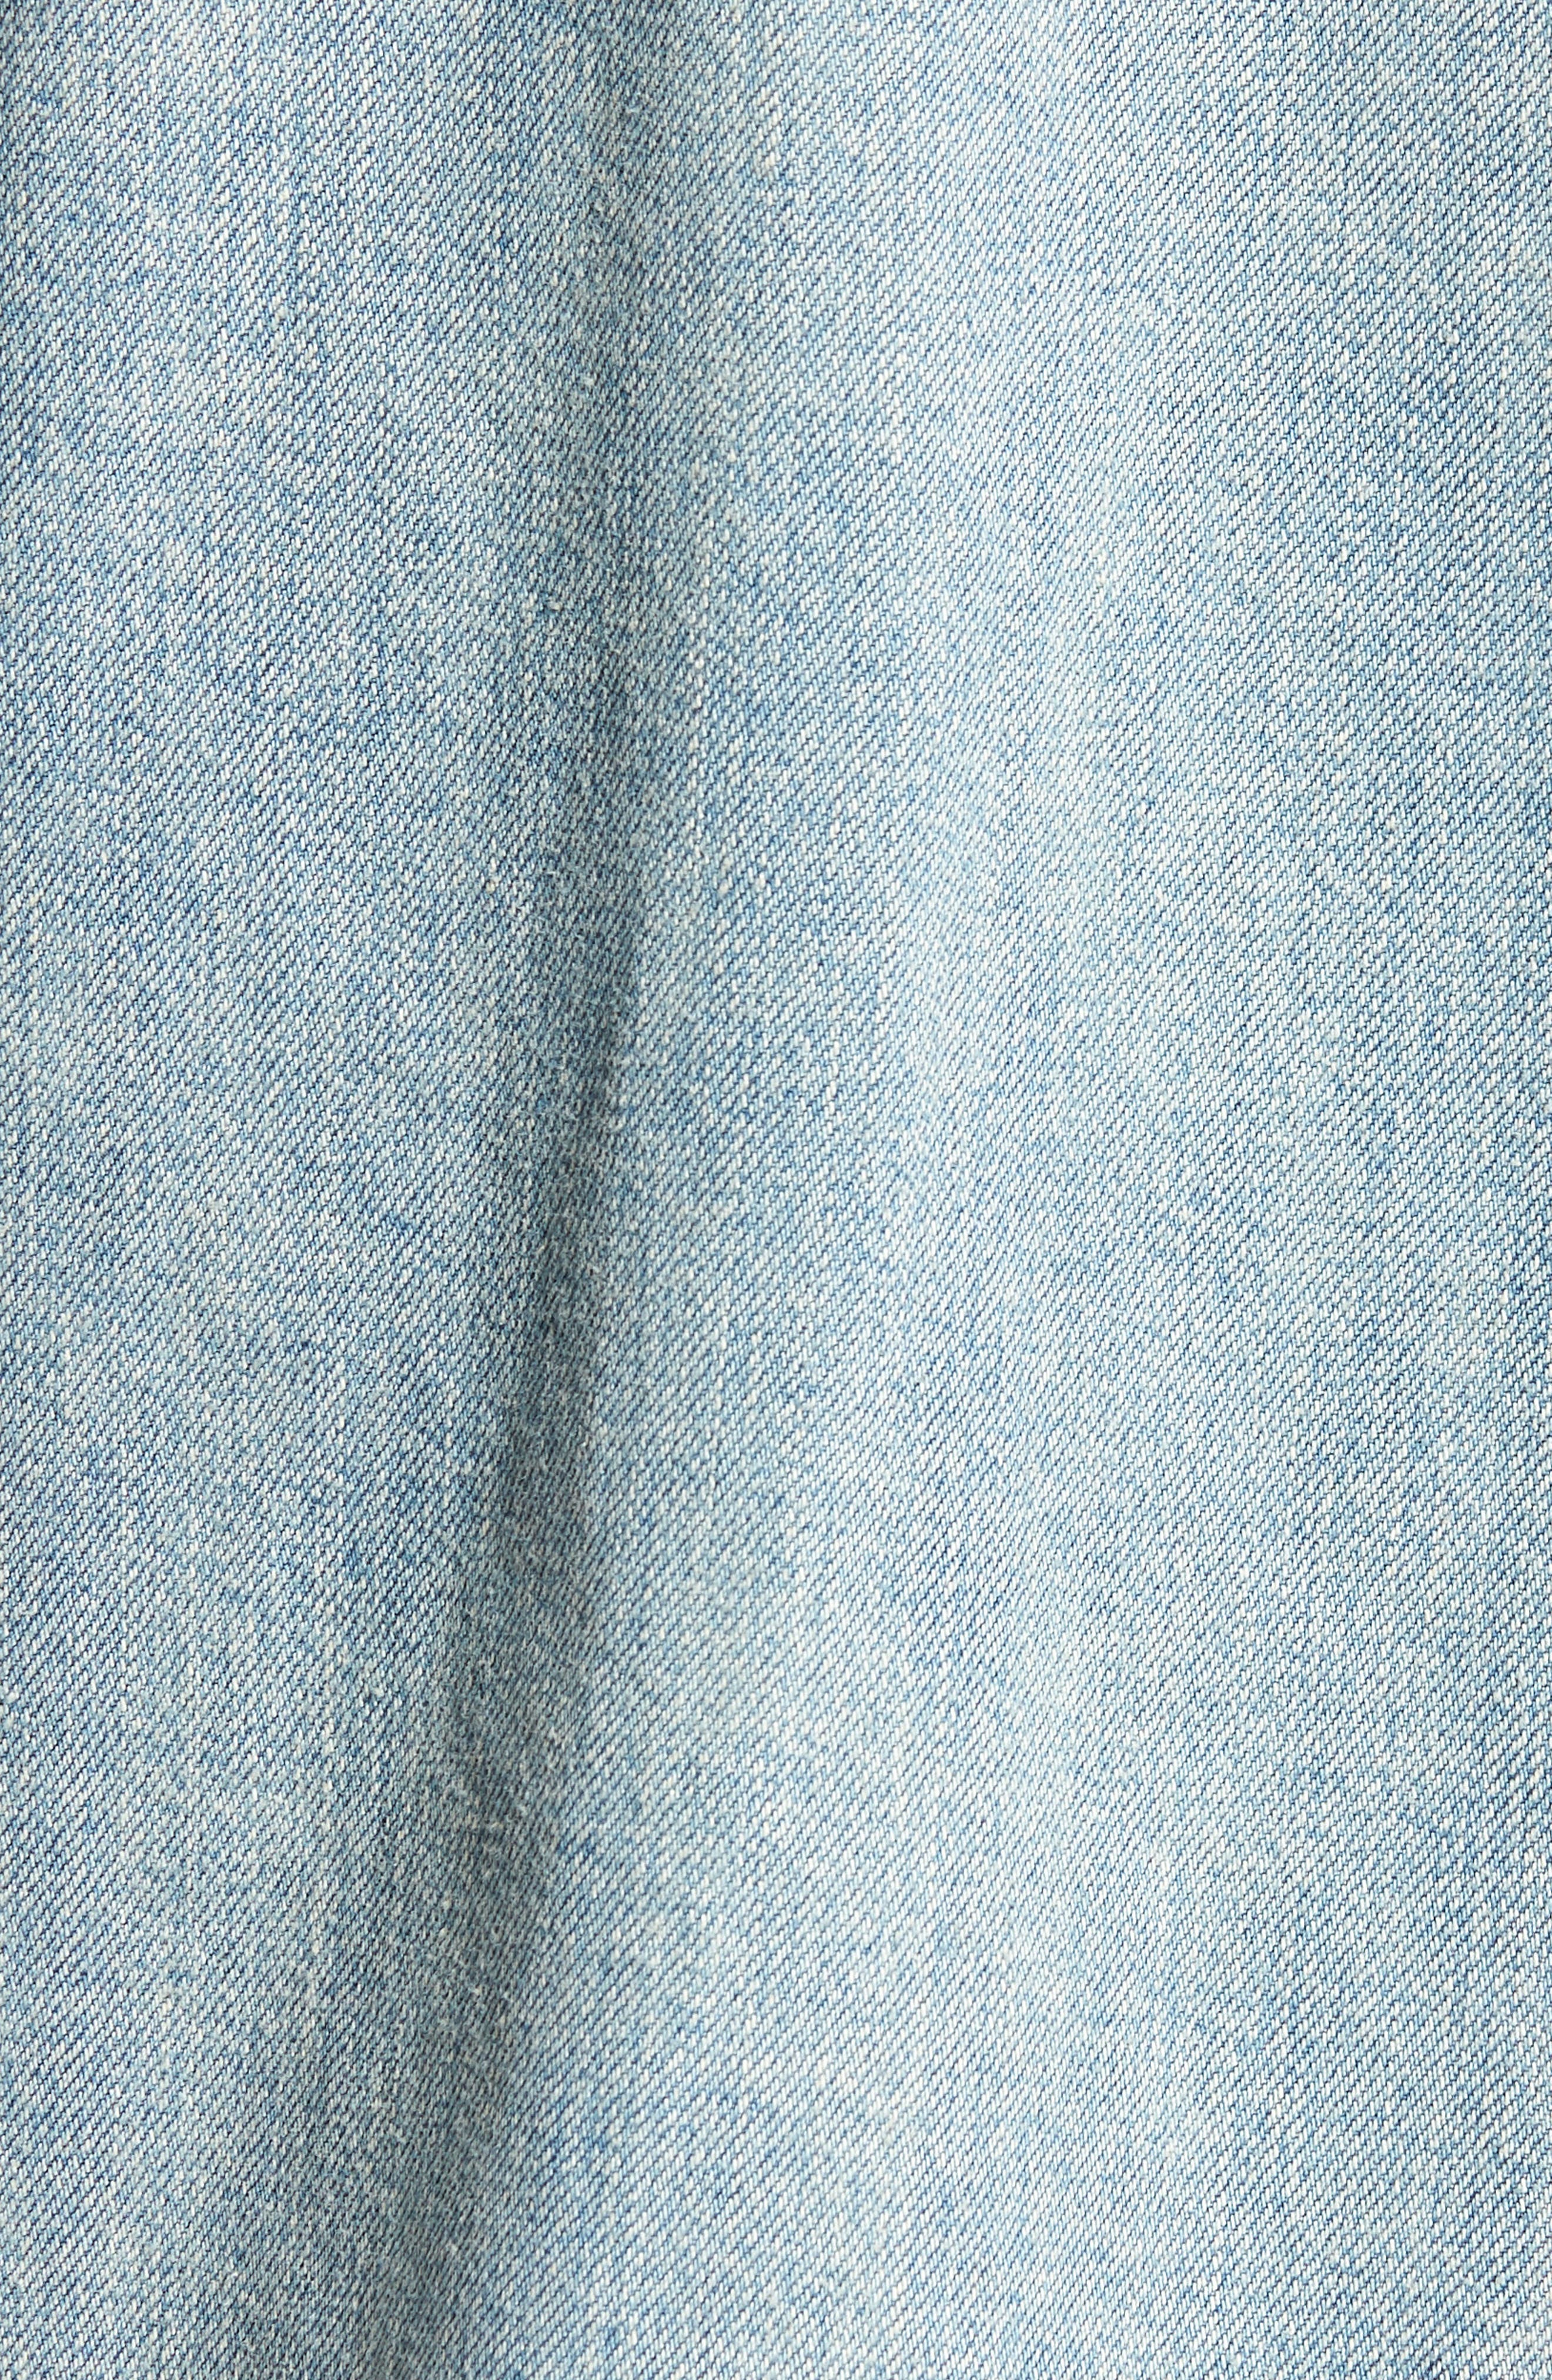 Denim Jacket,                             Alternate thumbnail 5, color,                             Silver City